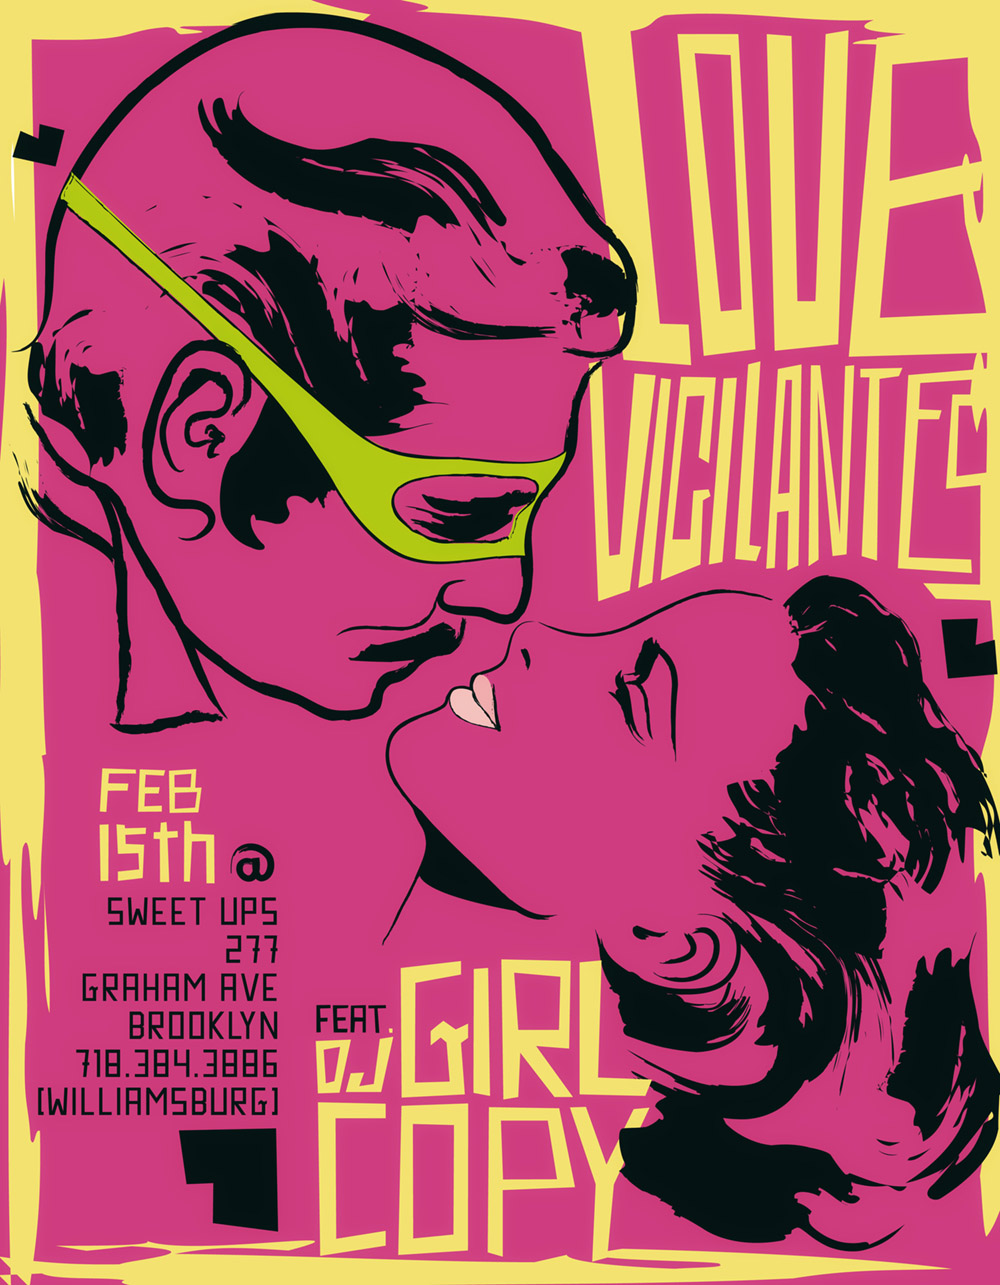 LOVE VIGILANTES FLYER